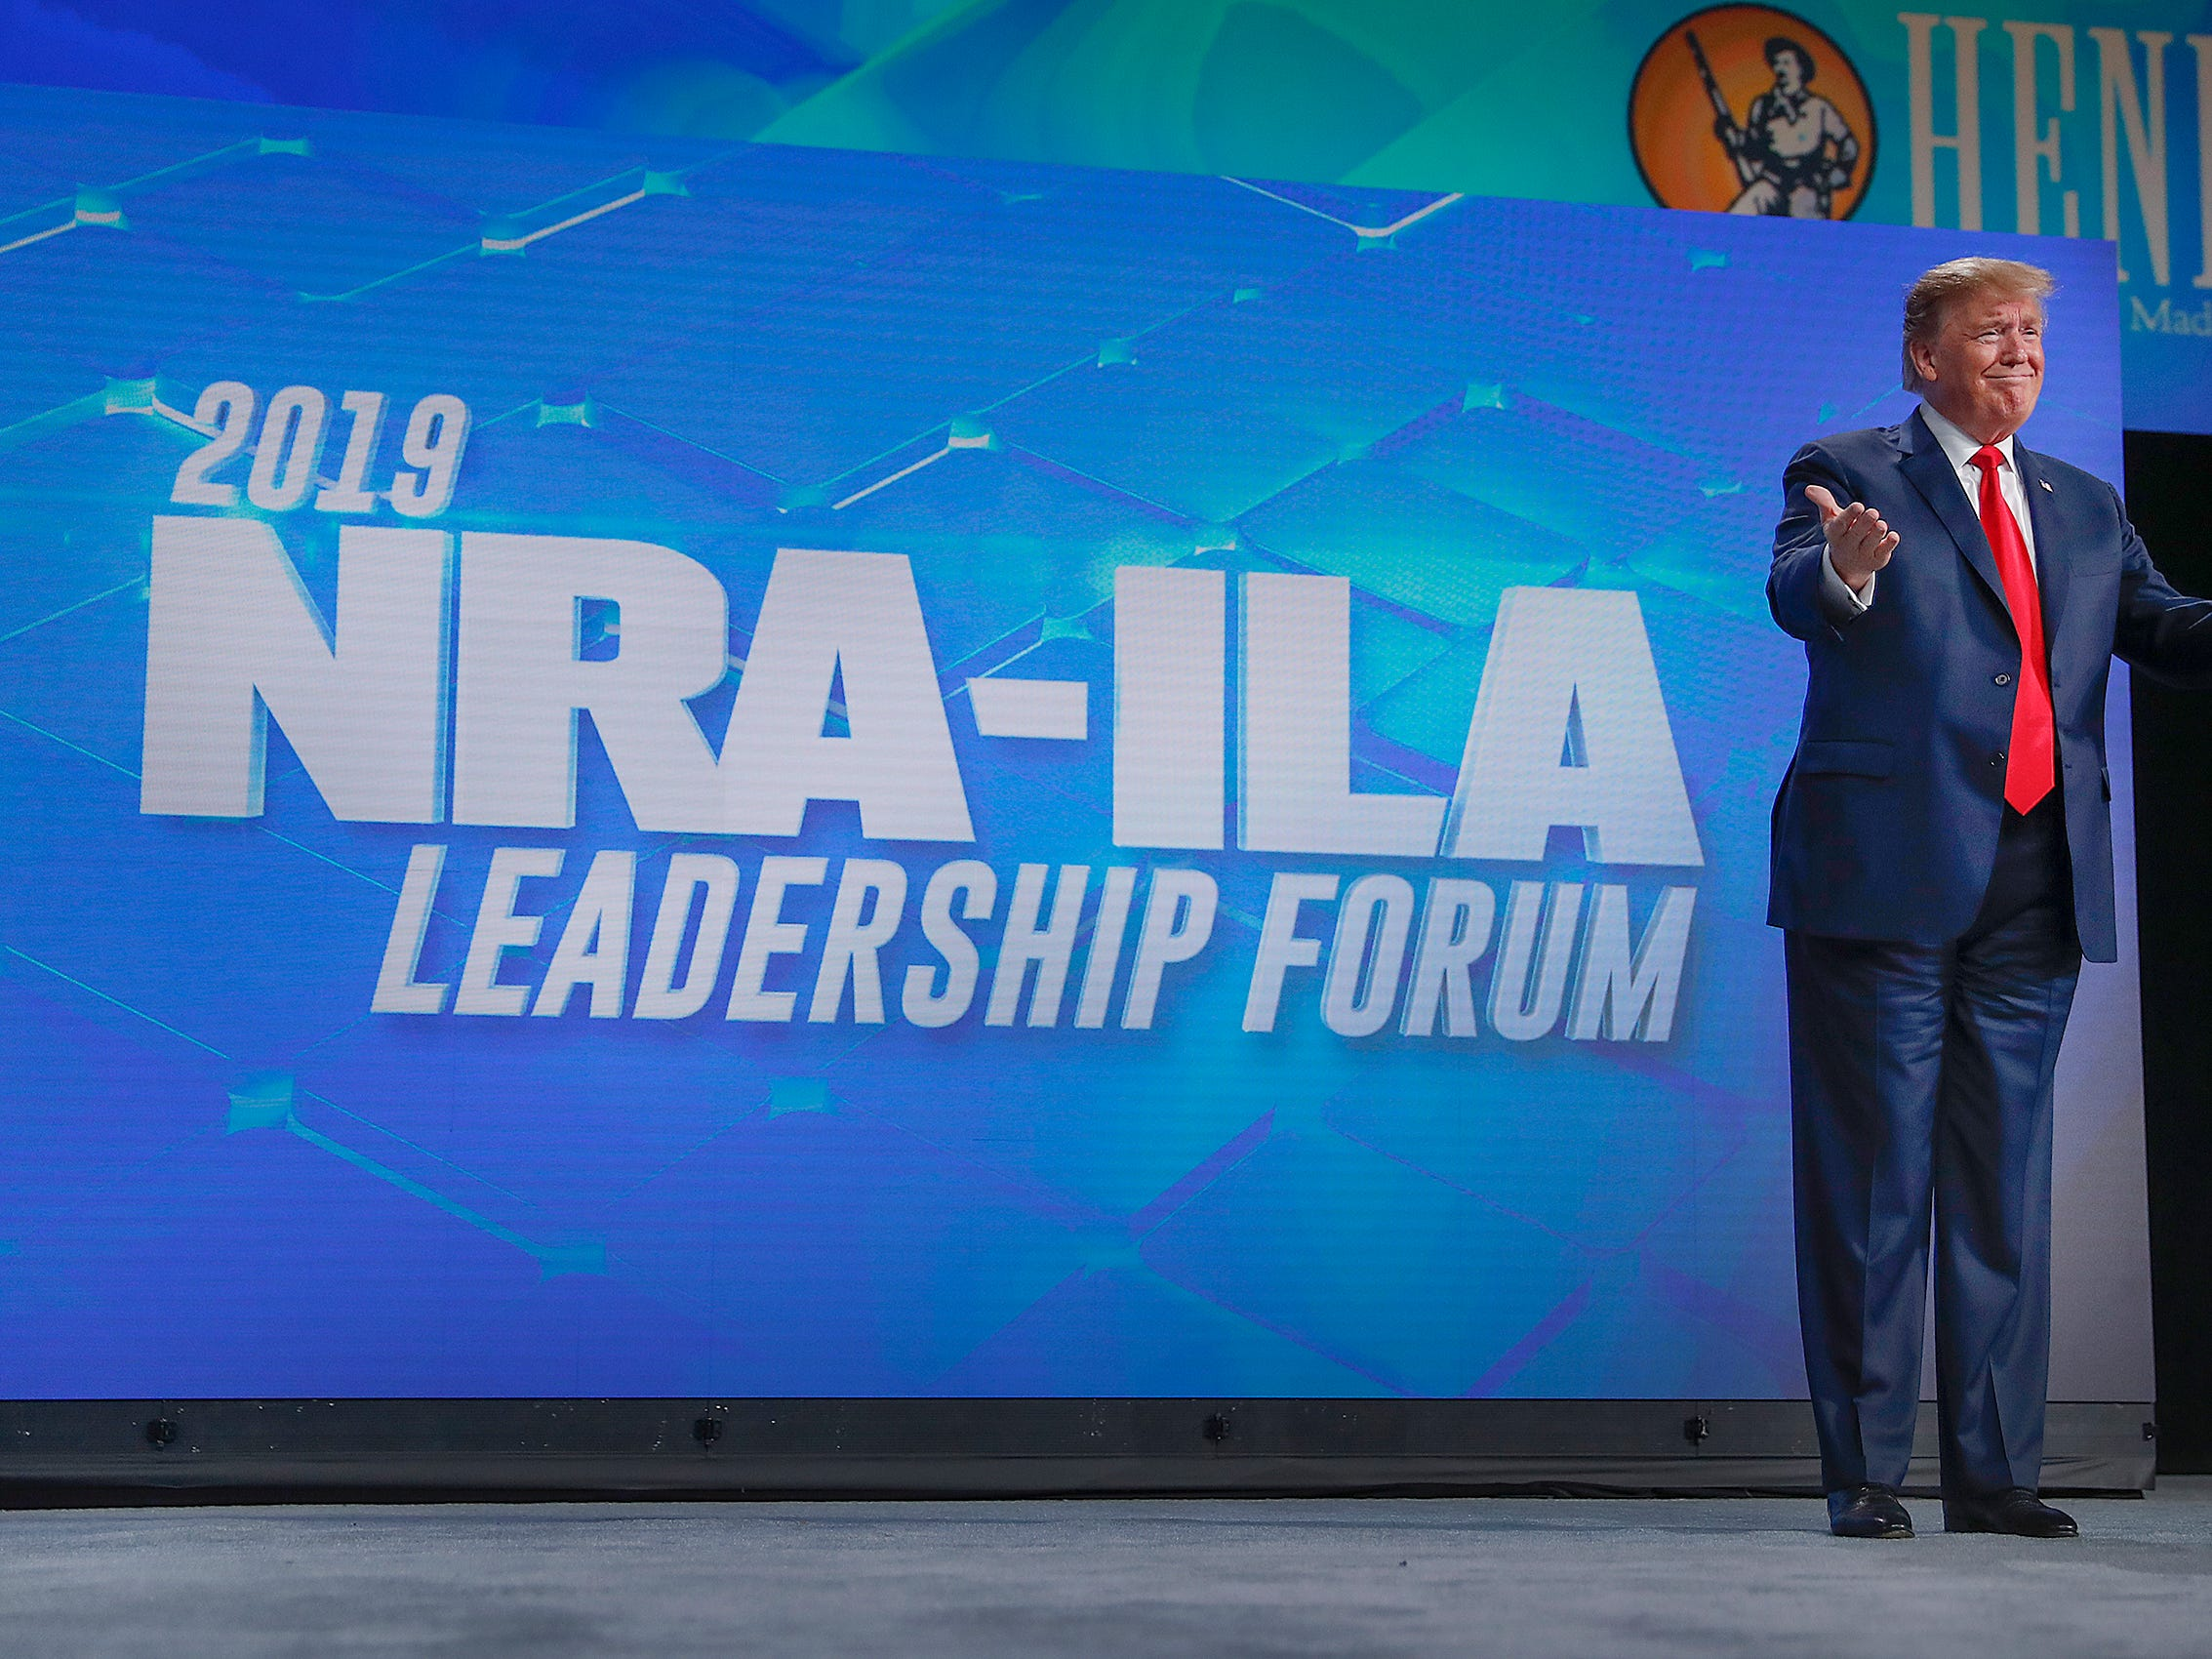 President Donald Trump greets his supporters at the NRA-ILA Leadership Forum at Lucas Oil Stadium on Friday, April 26, 2019. The forum is part of the 148th NRA annual meetings and exhibits in Indianapolis.